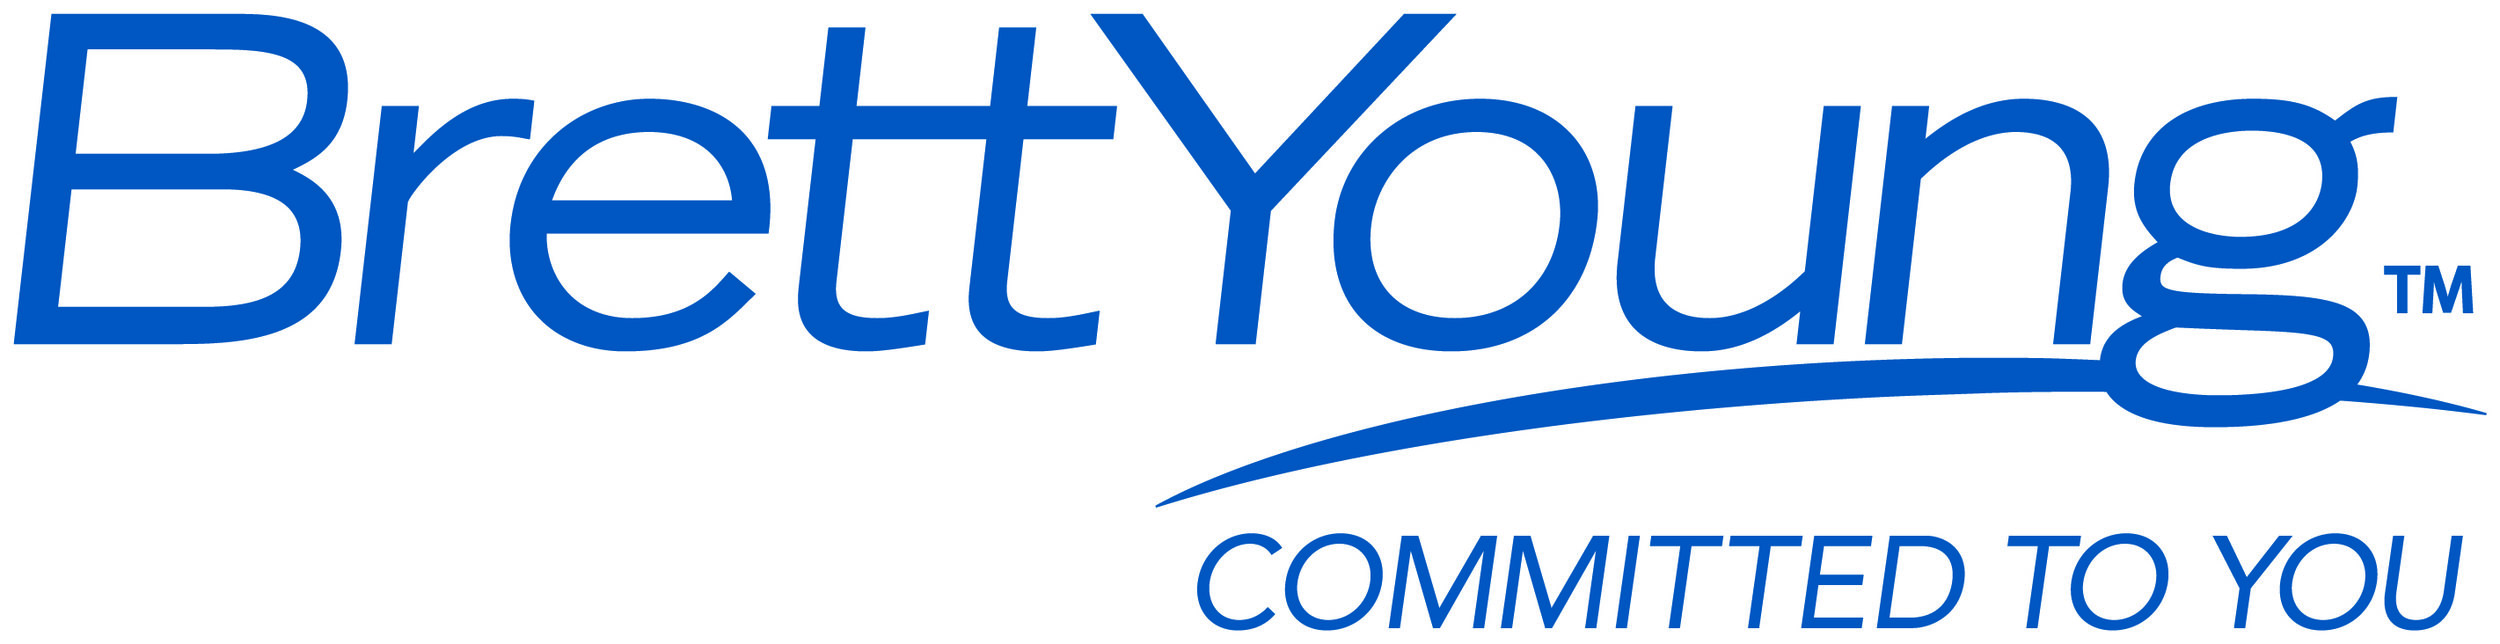 BrettYoung_logo_Committed_tagline_2017_4C.jpg